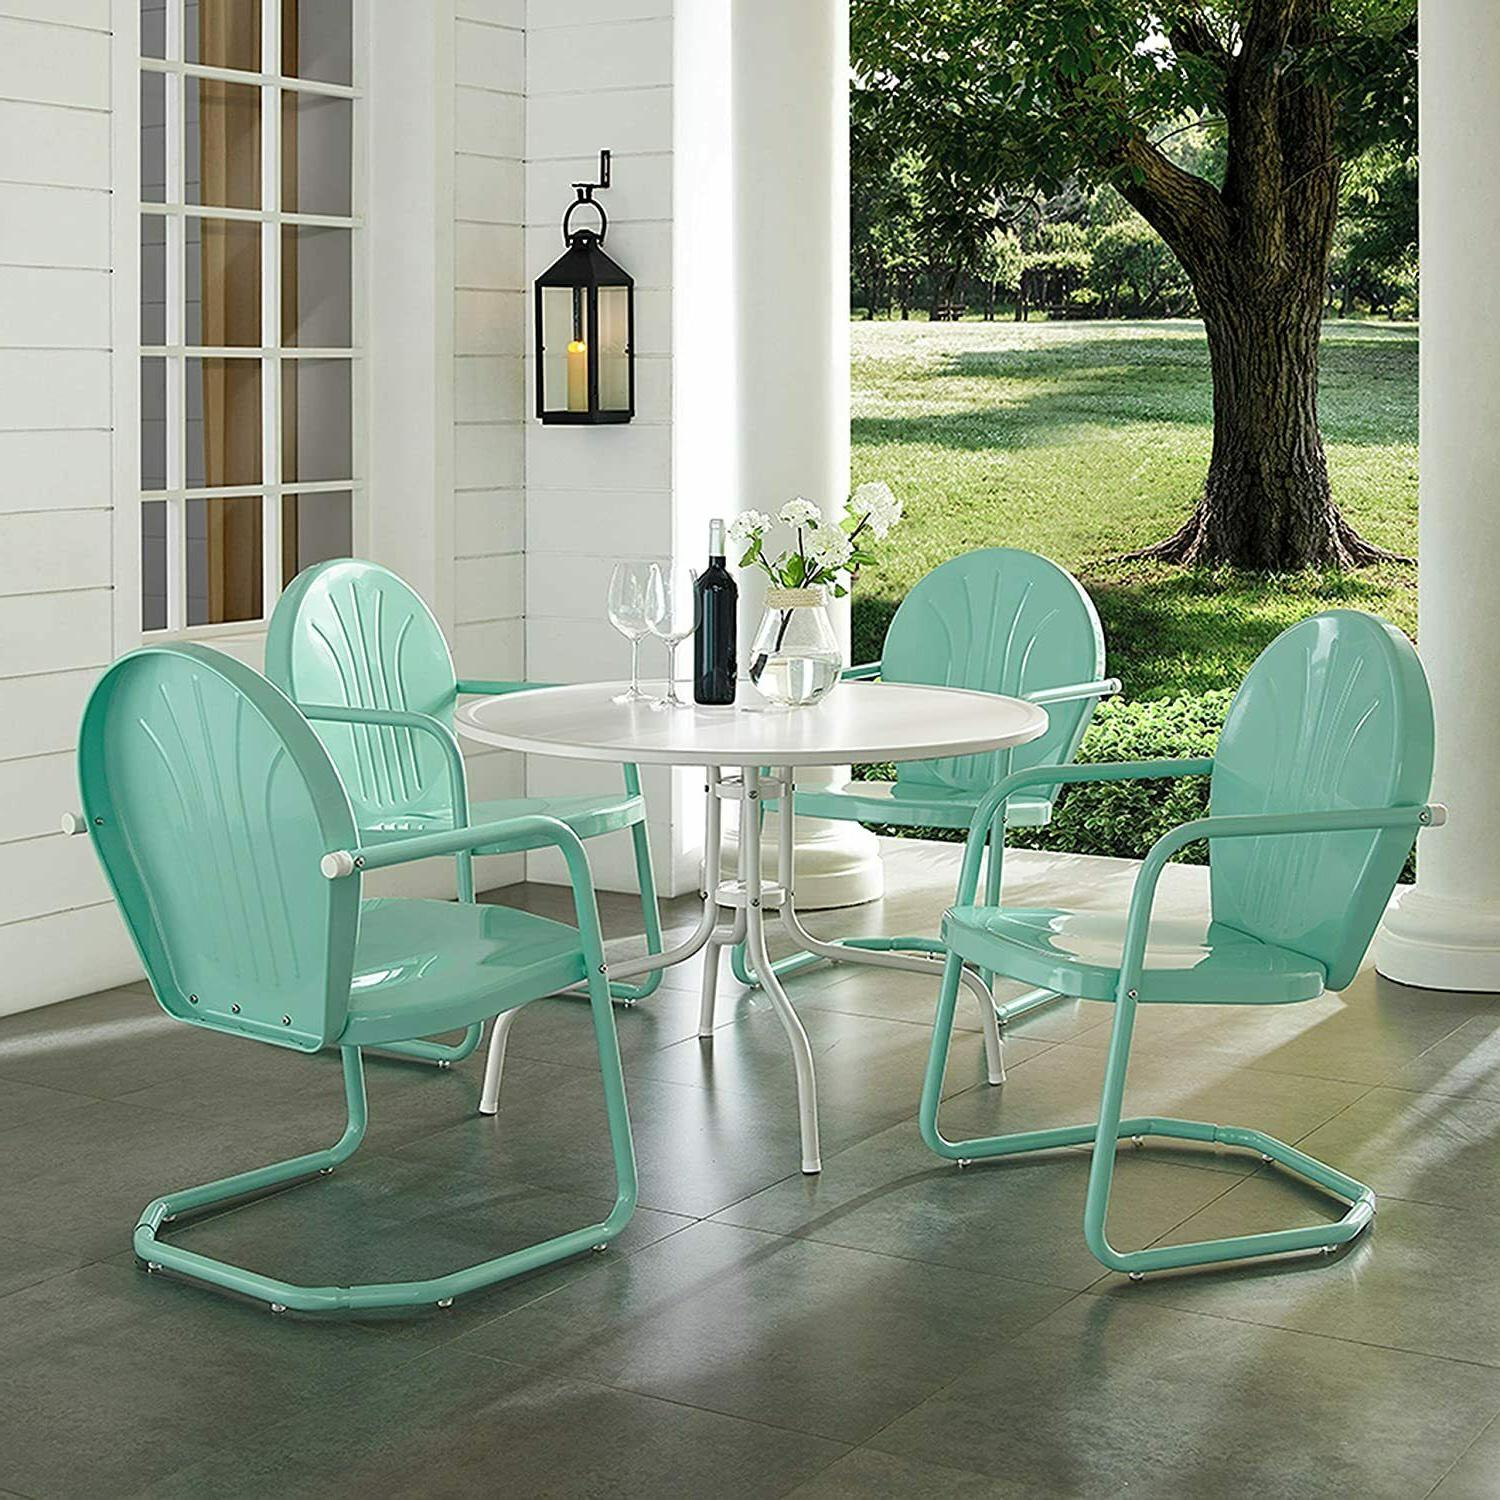 5 piece dining set 1 table 4